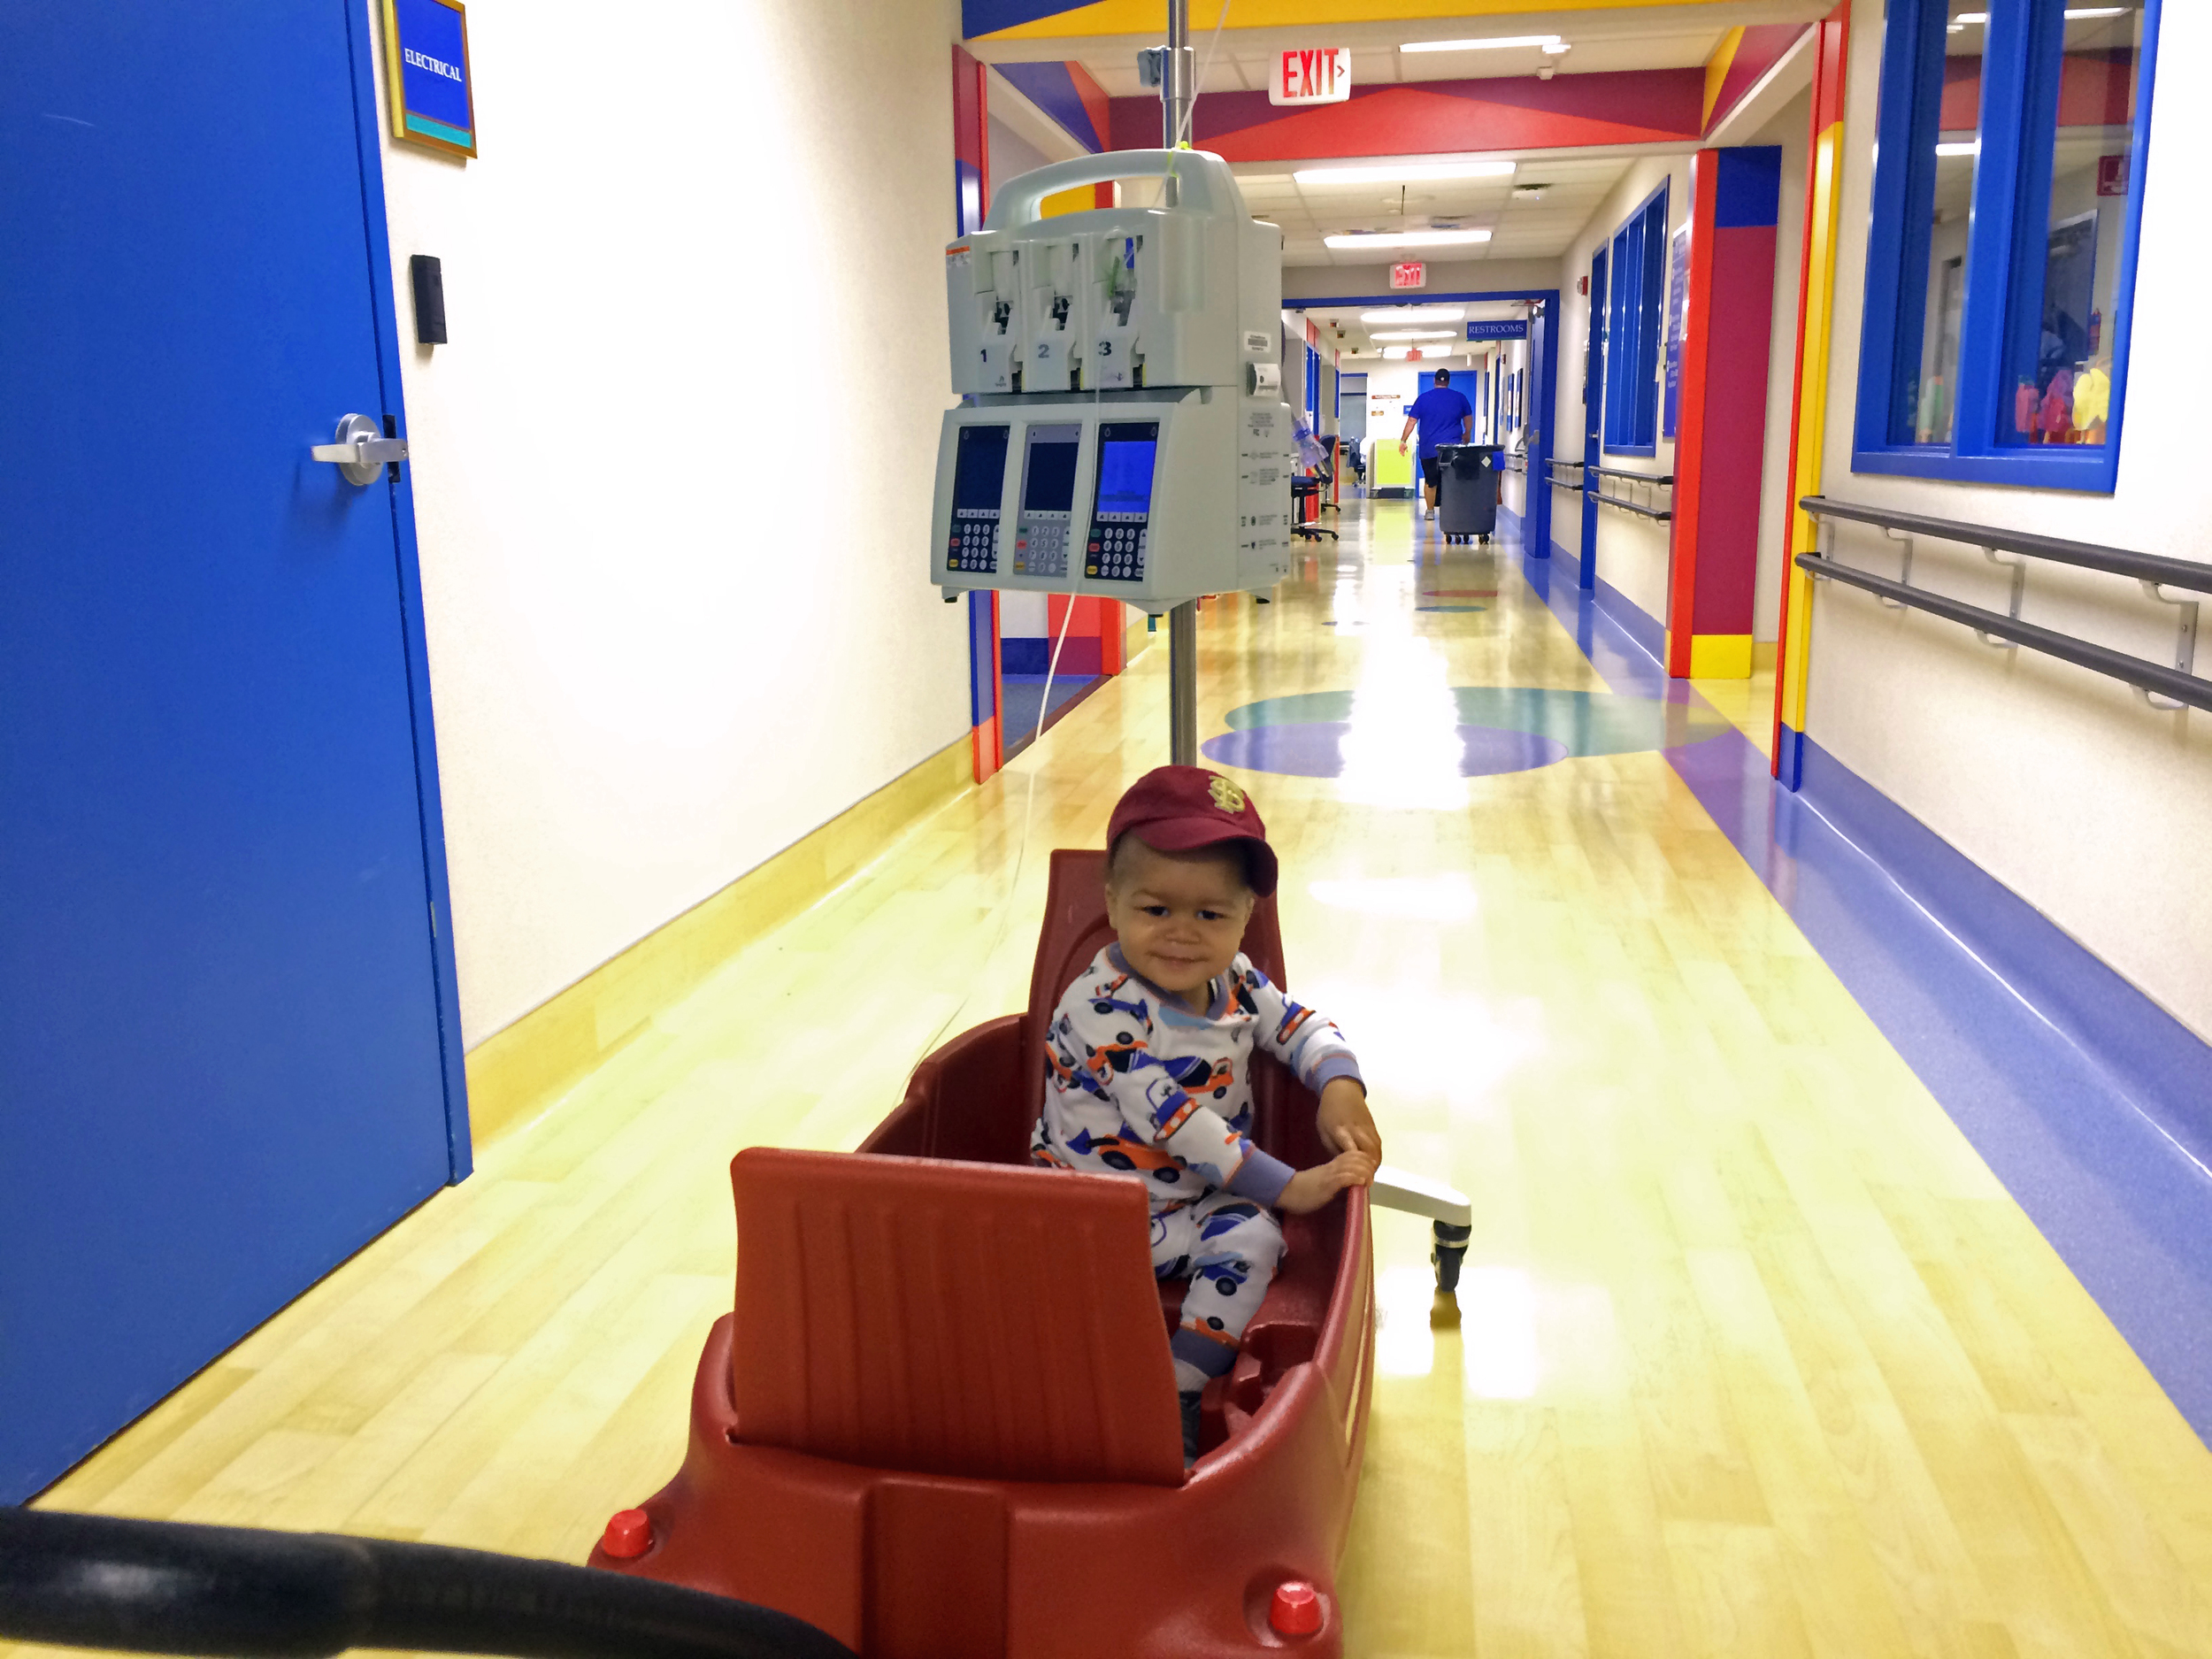 Day 205: Elliott takes a wagon ride around the oncology floor. This has become one of hisfavorite activities. A nurse showed Rachel how to tie the IV pole to back of the wagon to free up one hand.